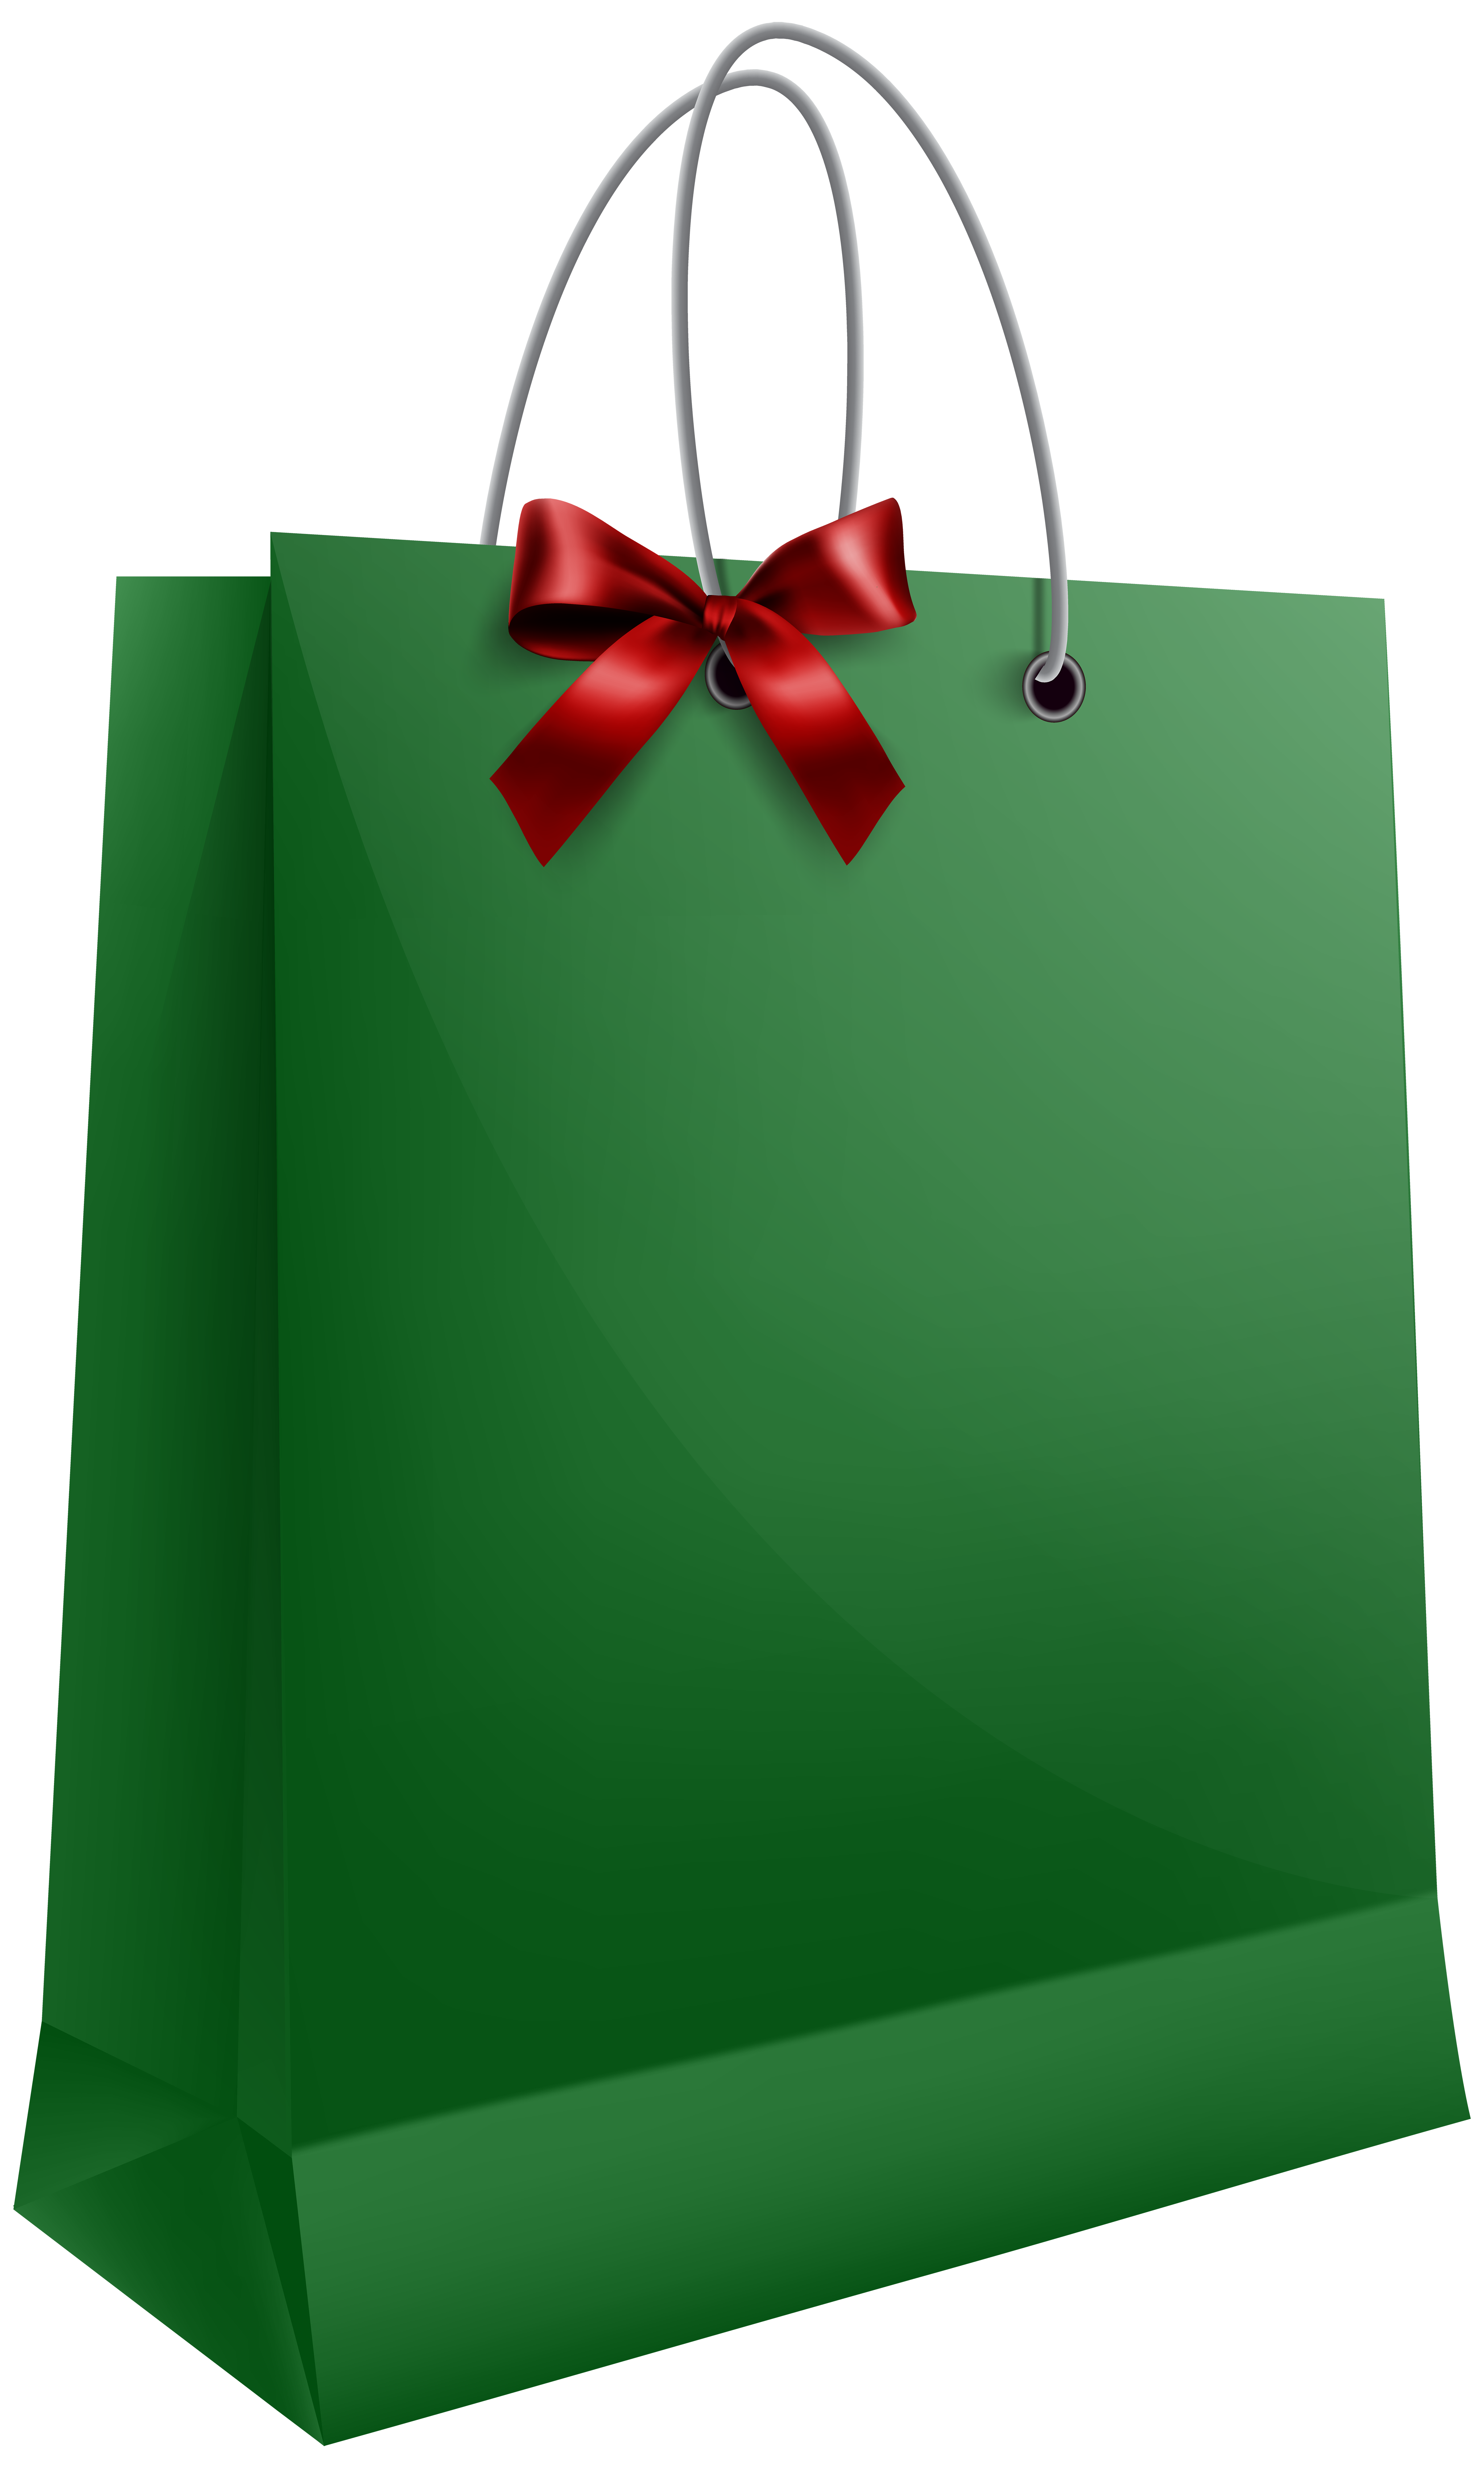 Clipart present christmas gift bag. Green with bow png